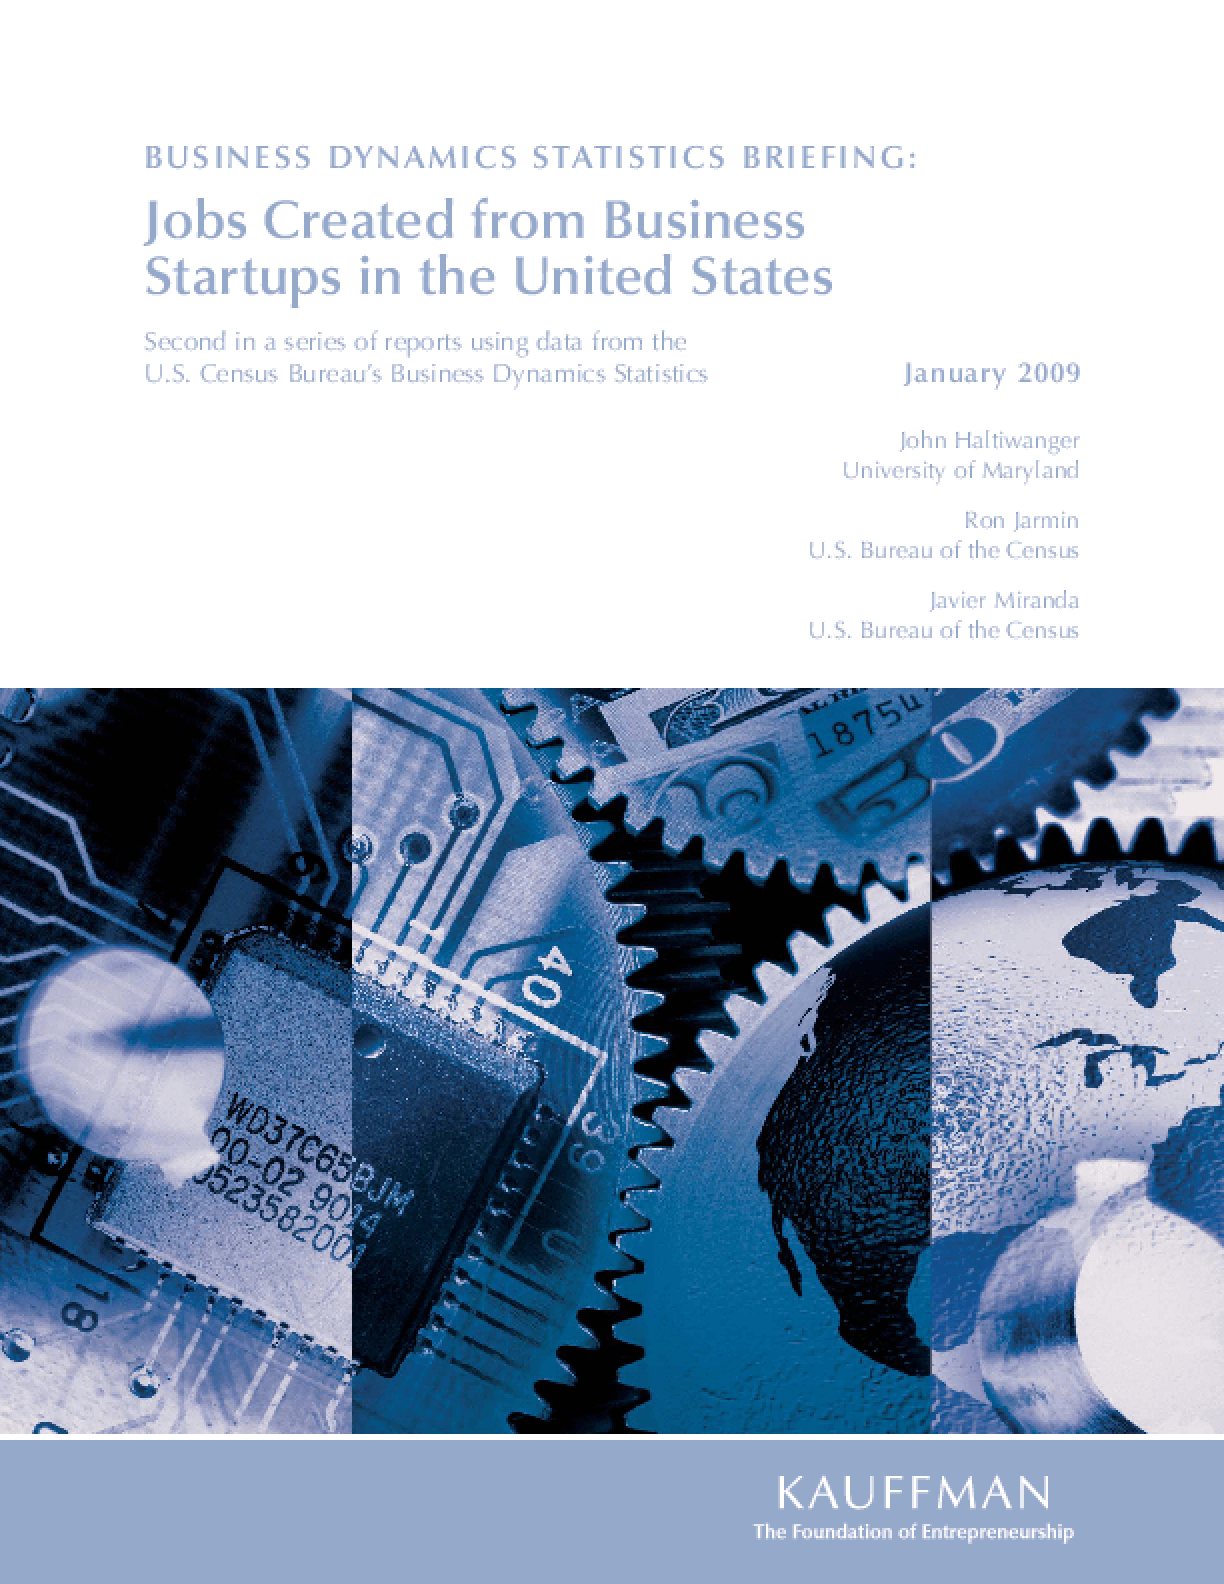 Business Dynamics Statistics Briefing: Jobs Created From Business Startups in the United States